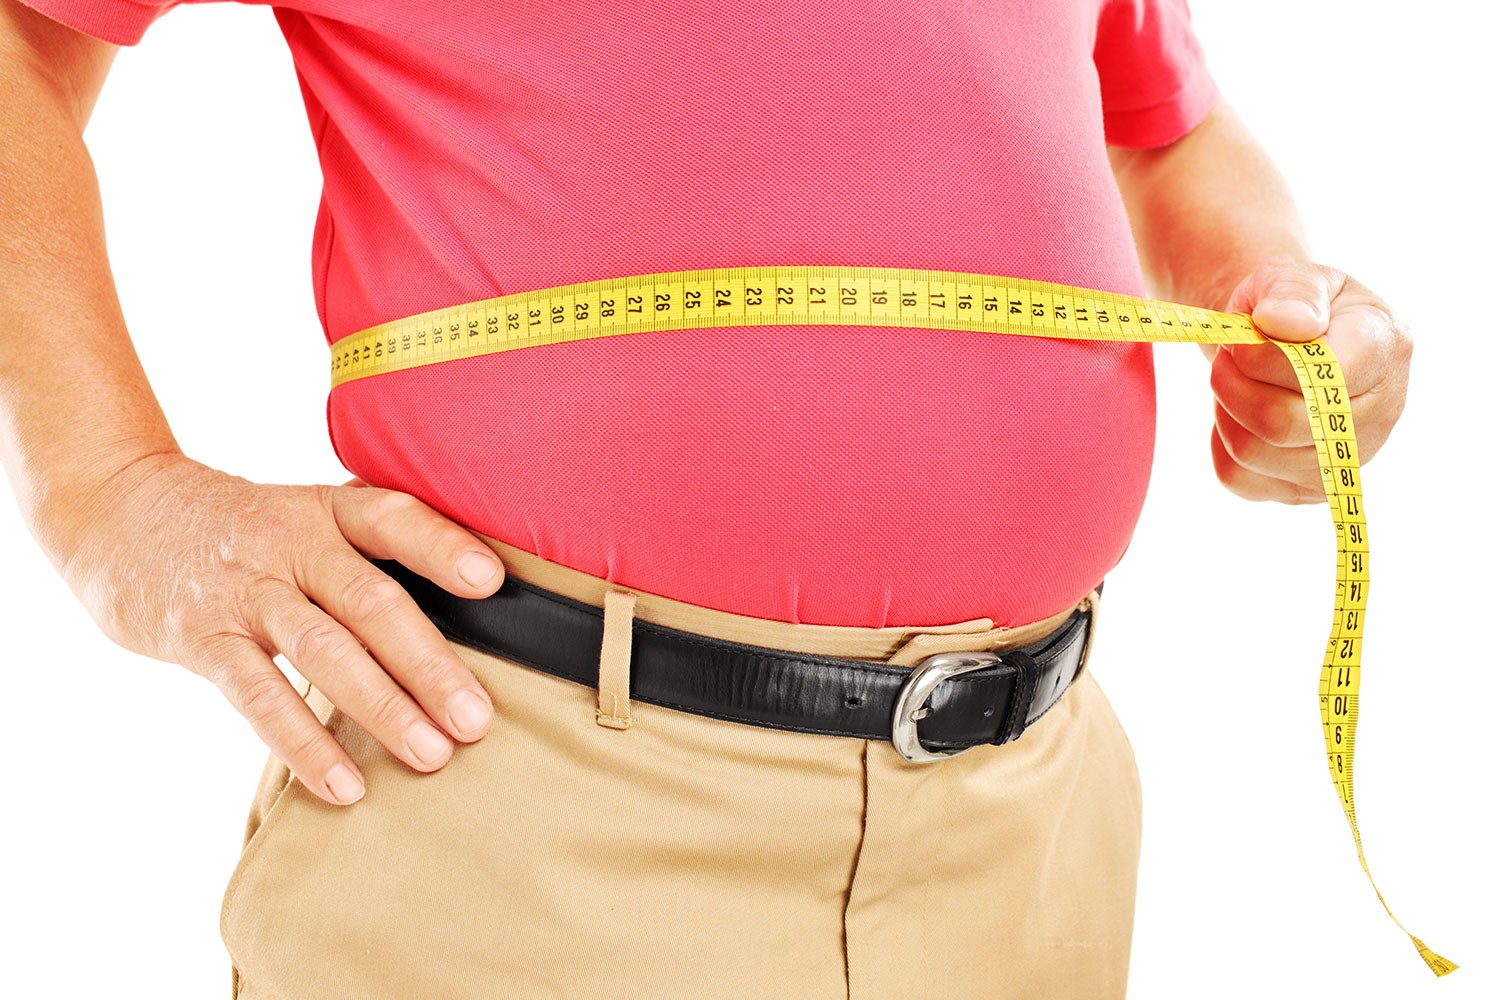 Treatment of obesity with traditional medicine